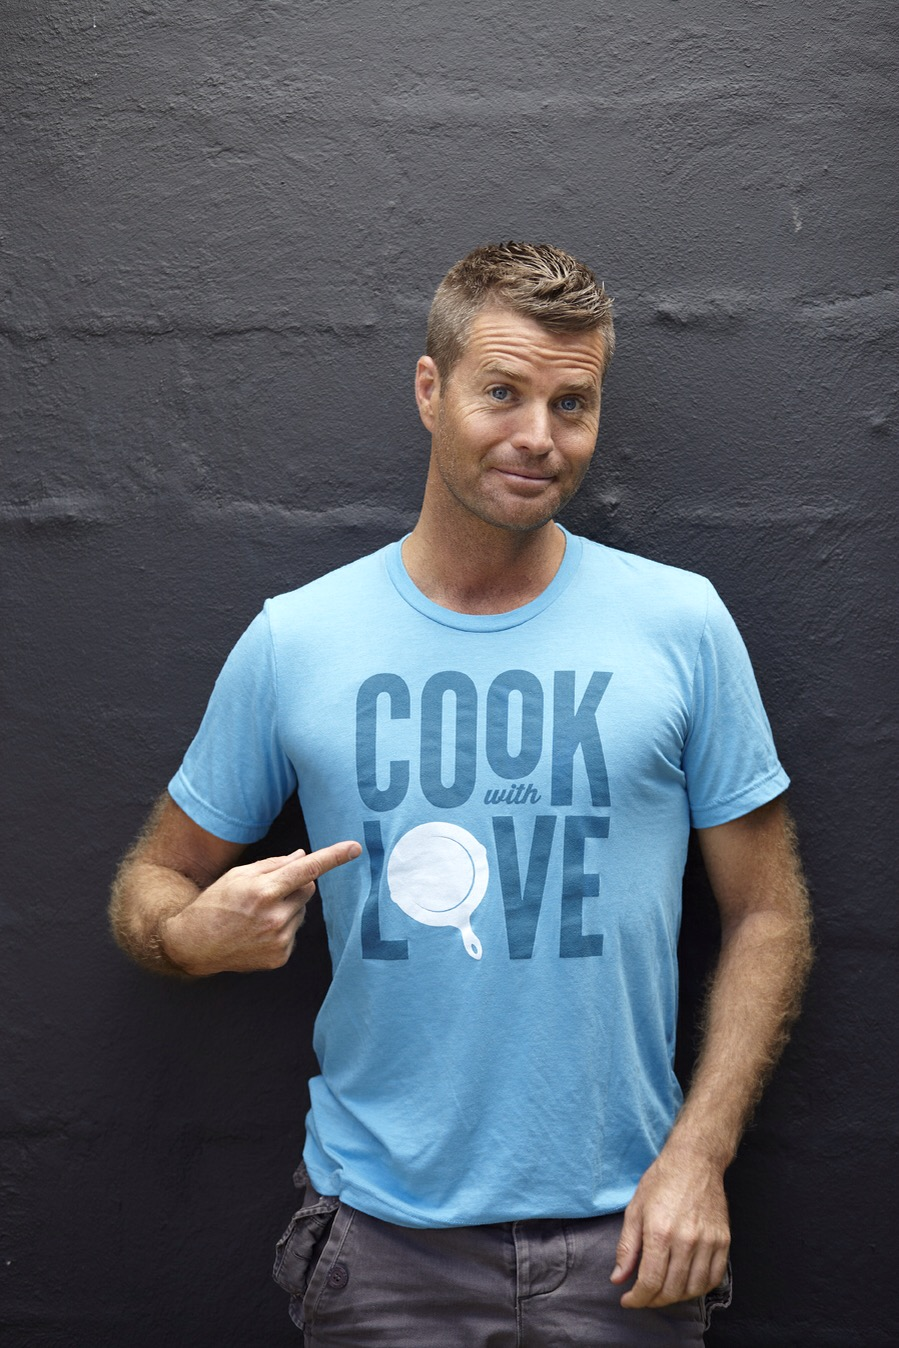 Five Minutes with Pete Evans